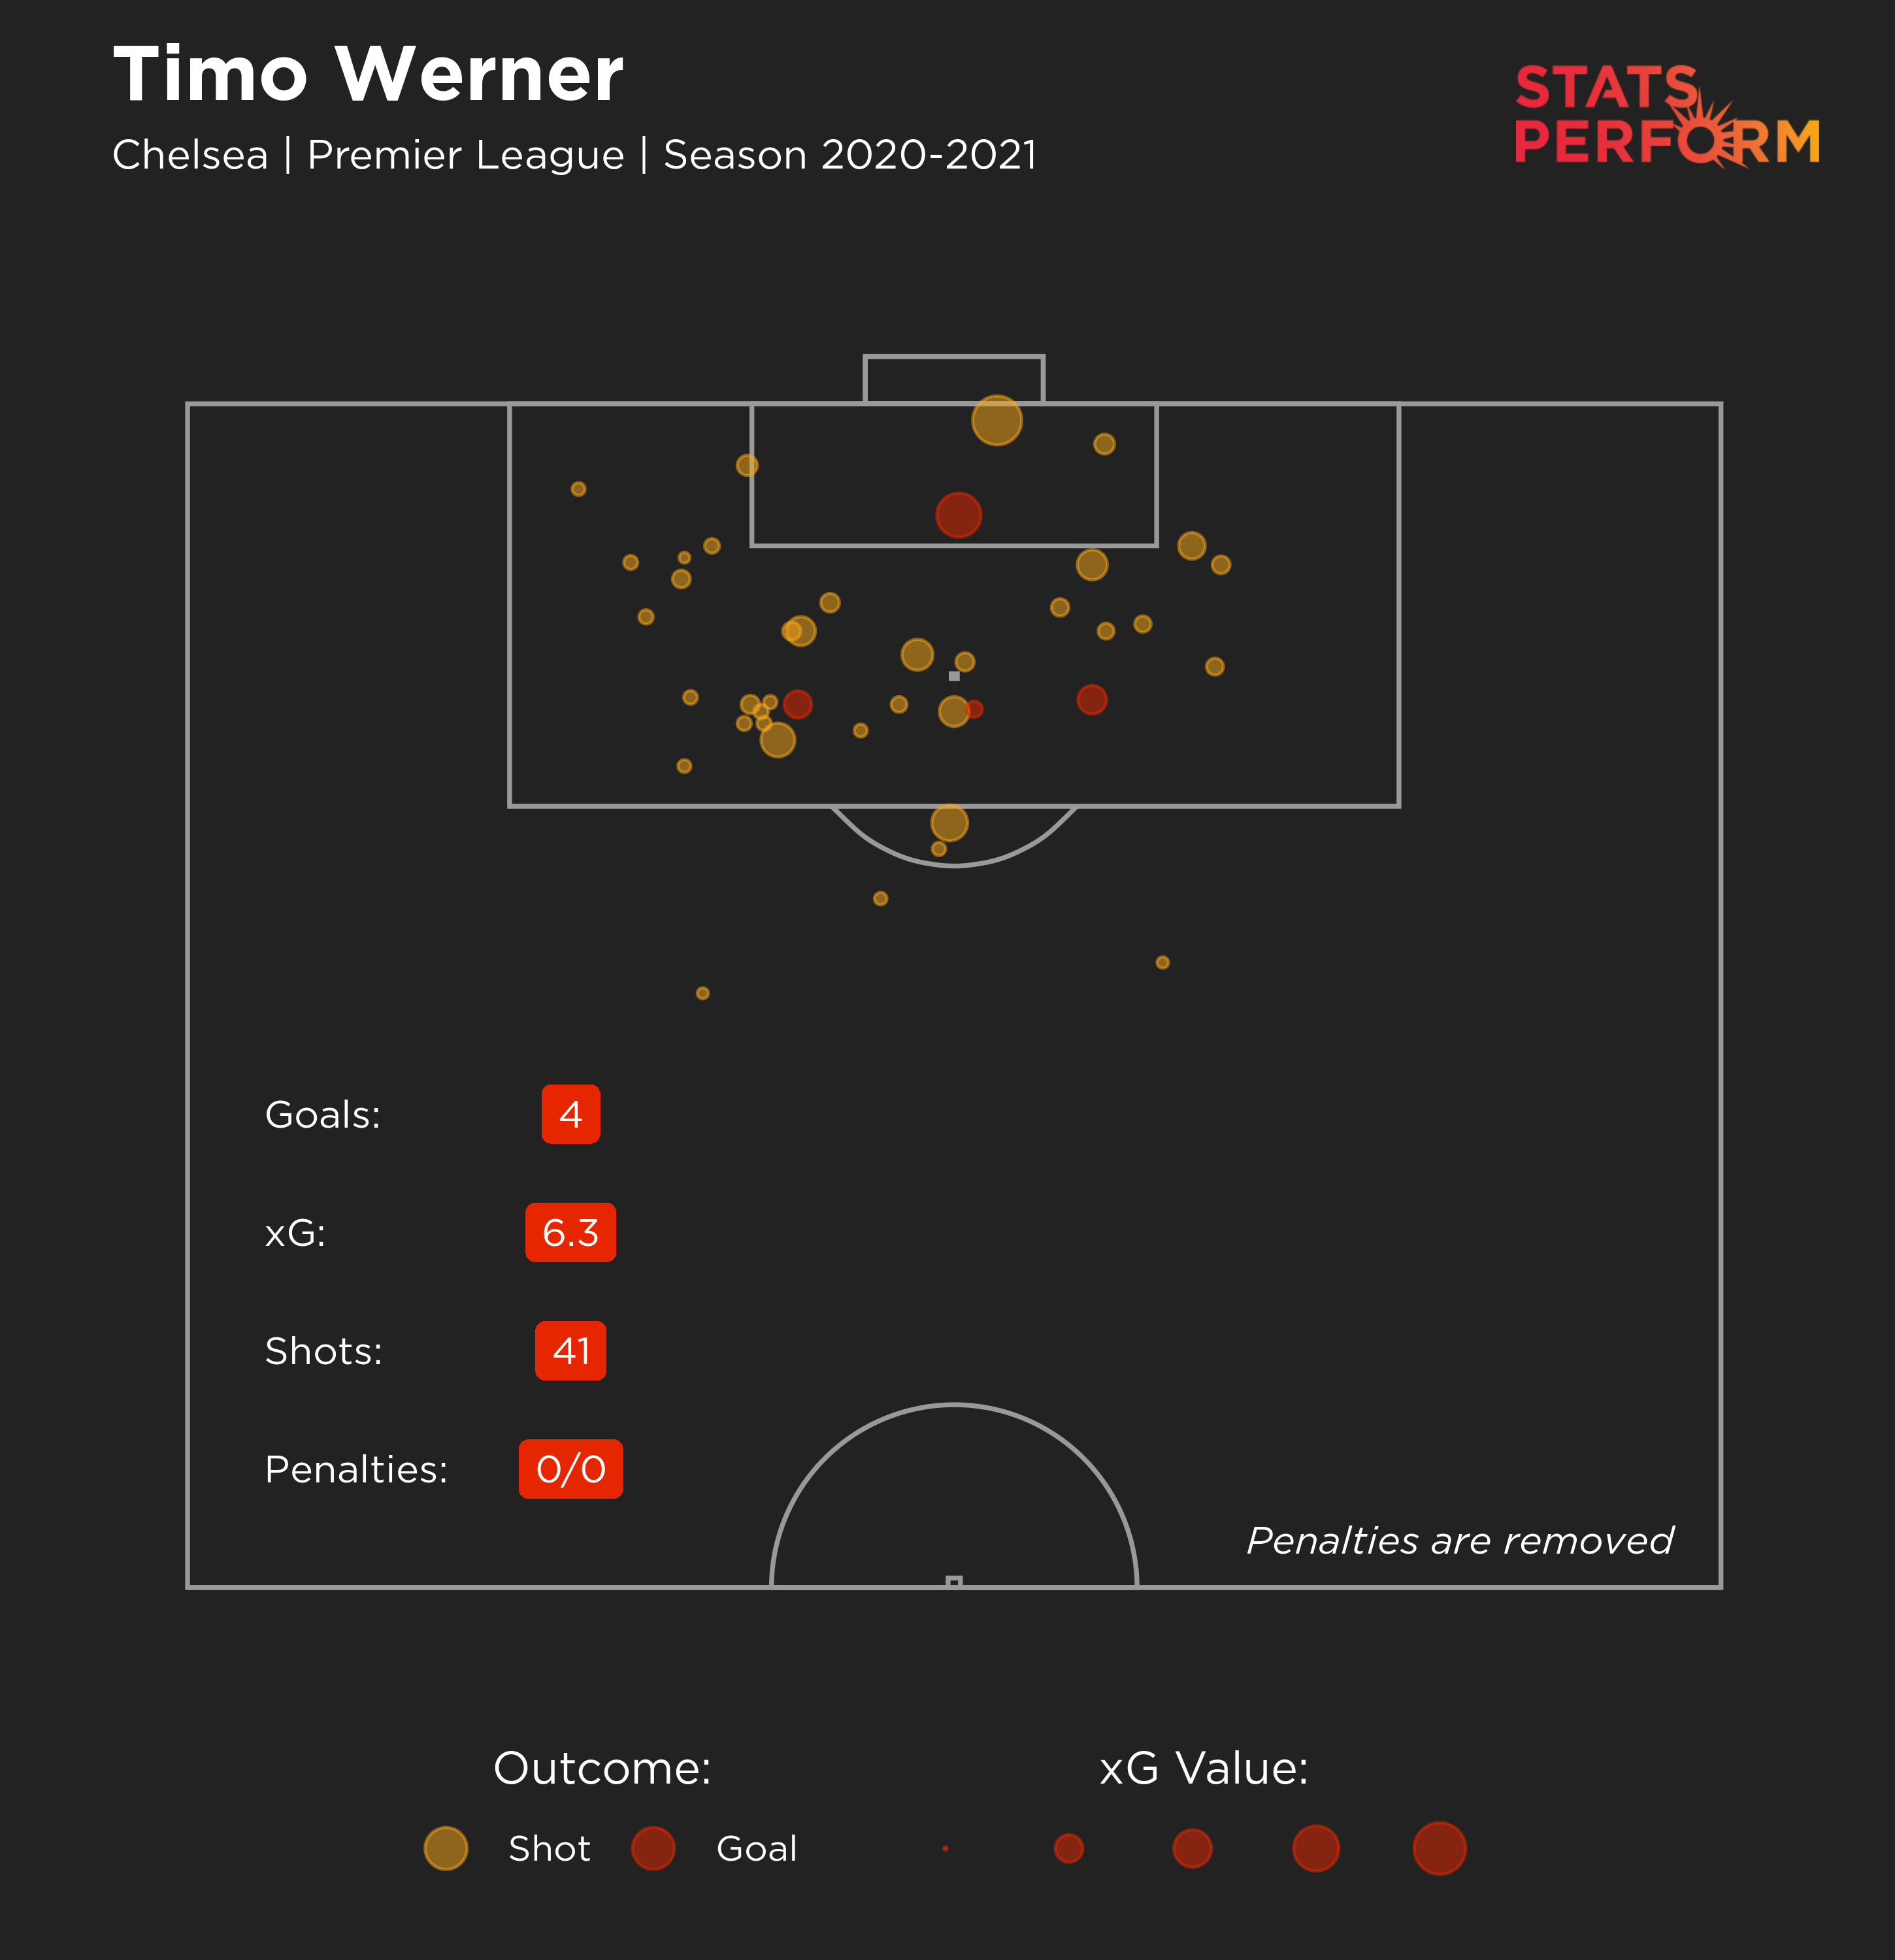 Timo Werner has performed below his expected goals (xG) value in the 2020-21 Premier League season